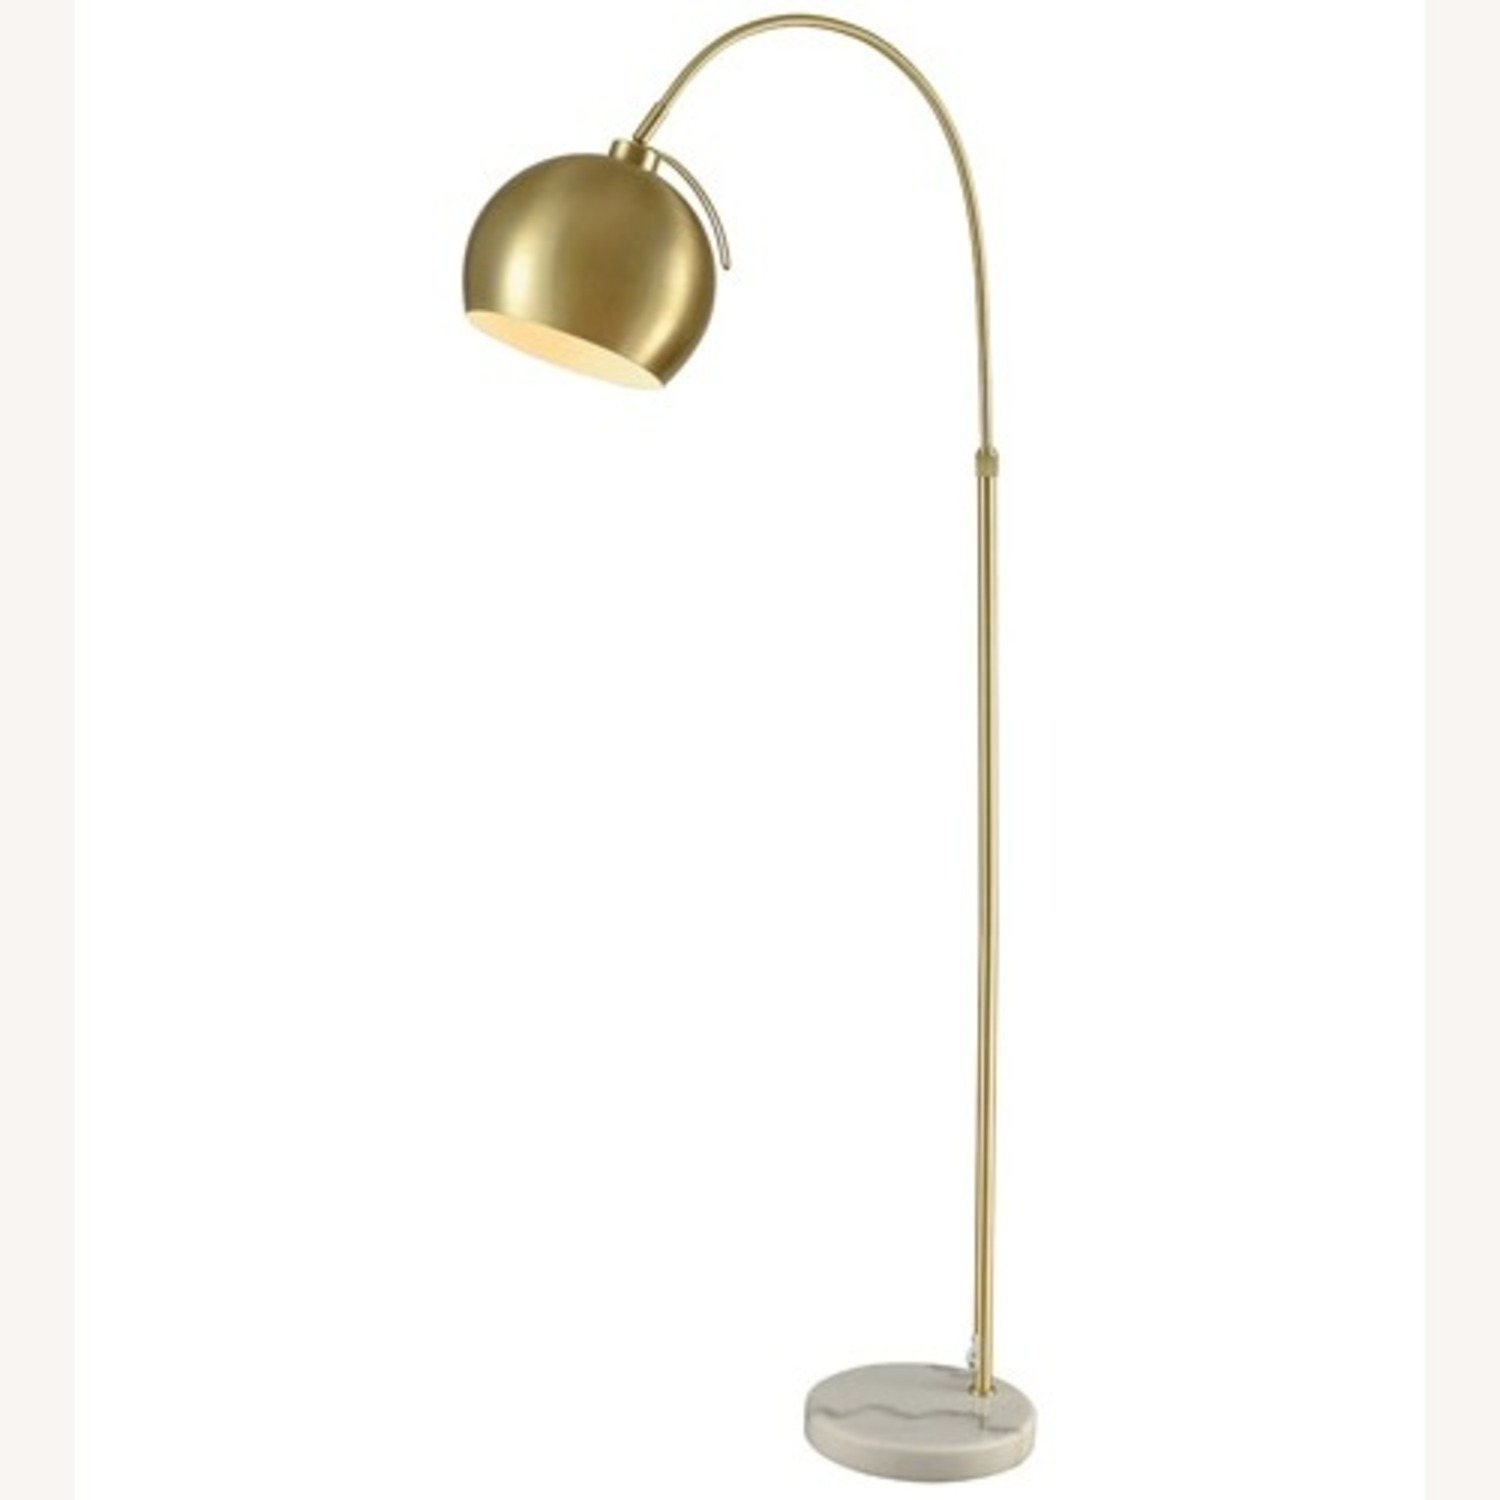 Gold Midcentury Curved Floor Lamp, Marble - image-1